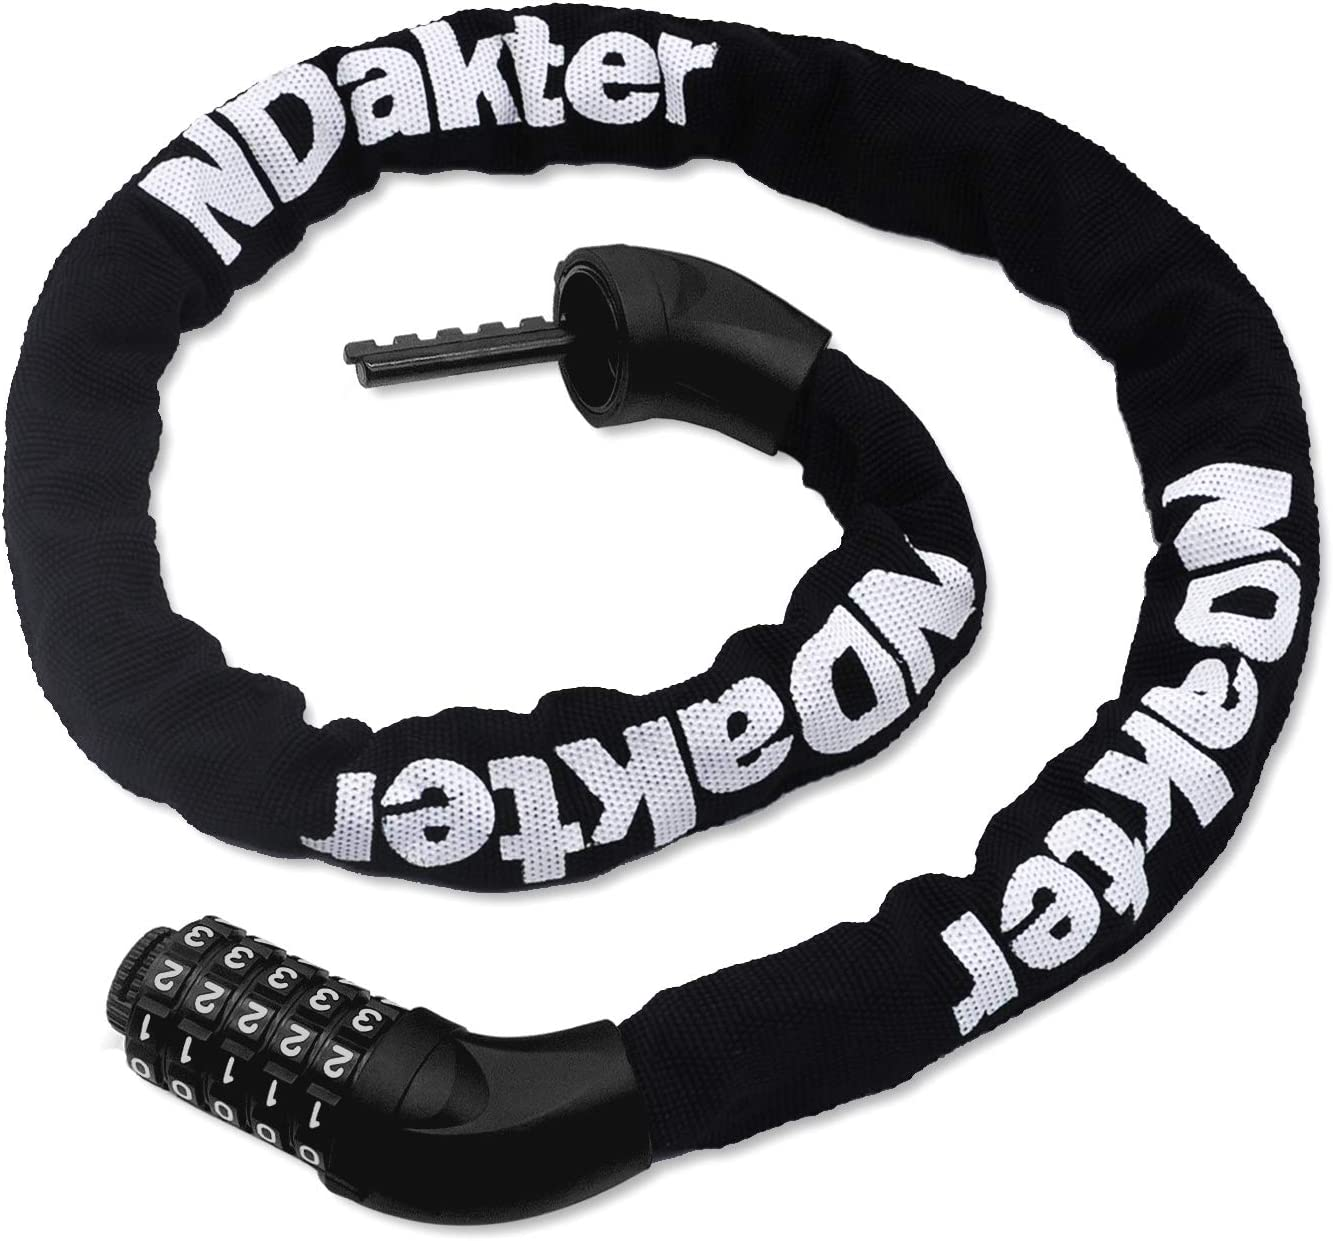 NDakter Bike Chain Max 79% Manufacturer OFFicial shop OFF Lock 5-Digit Bicycle Anti-Theft Combination